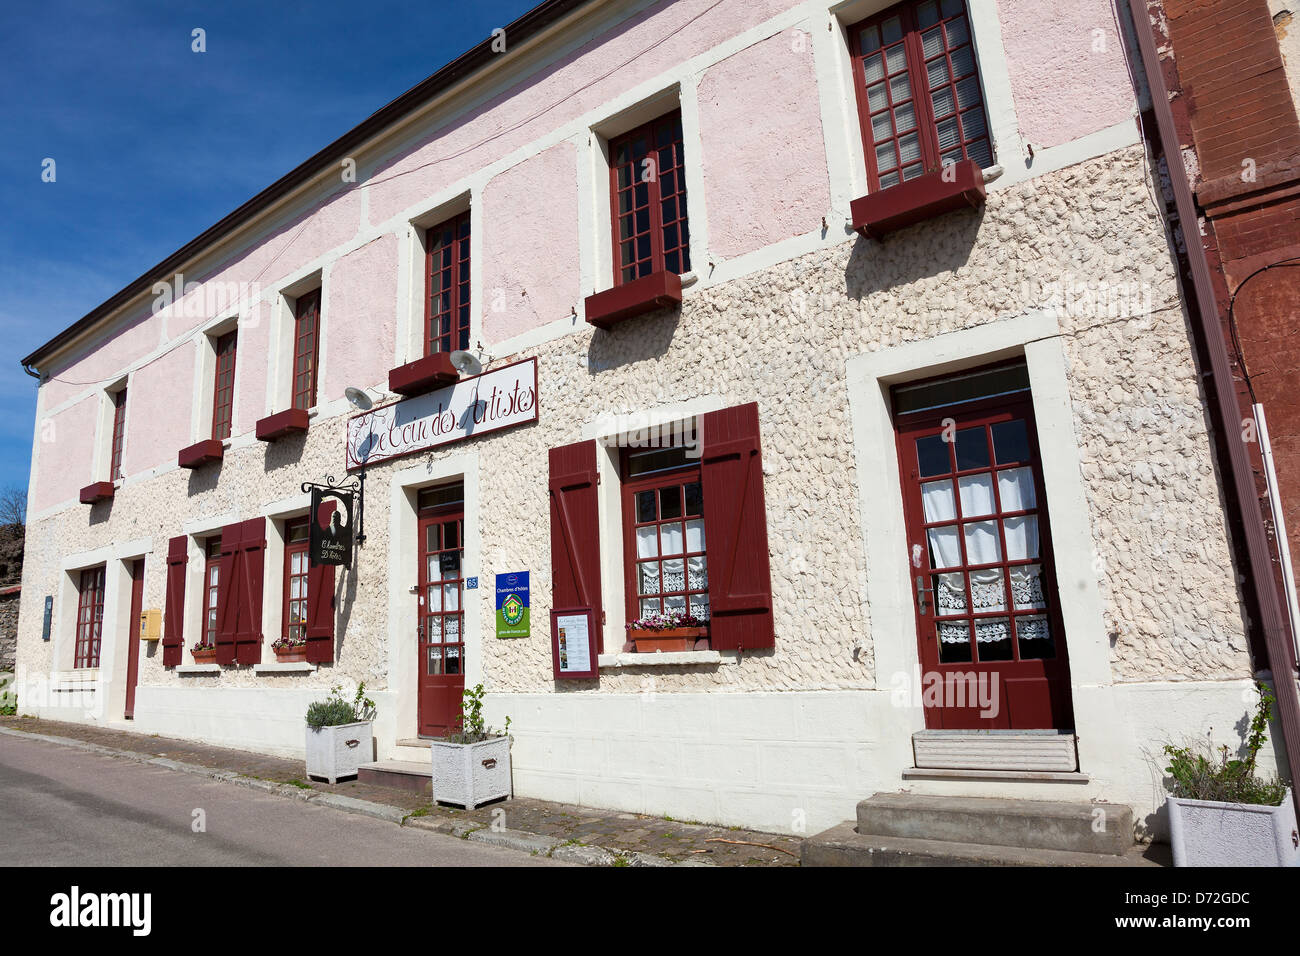 Architecture of Giverny, Haute Normandie, France - Stock Image